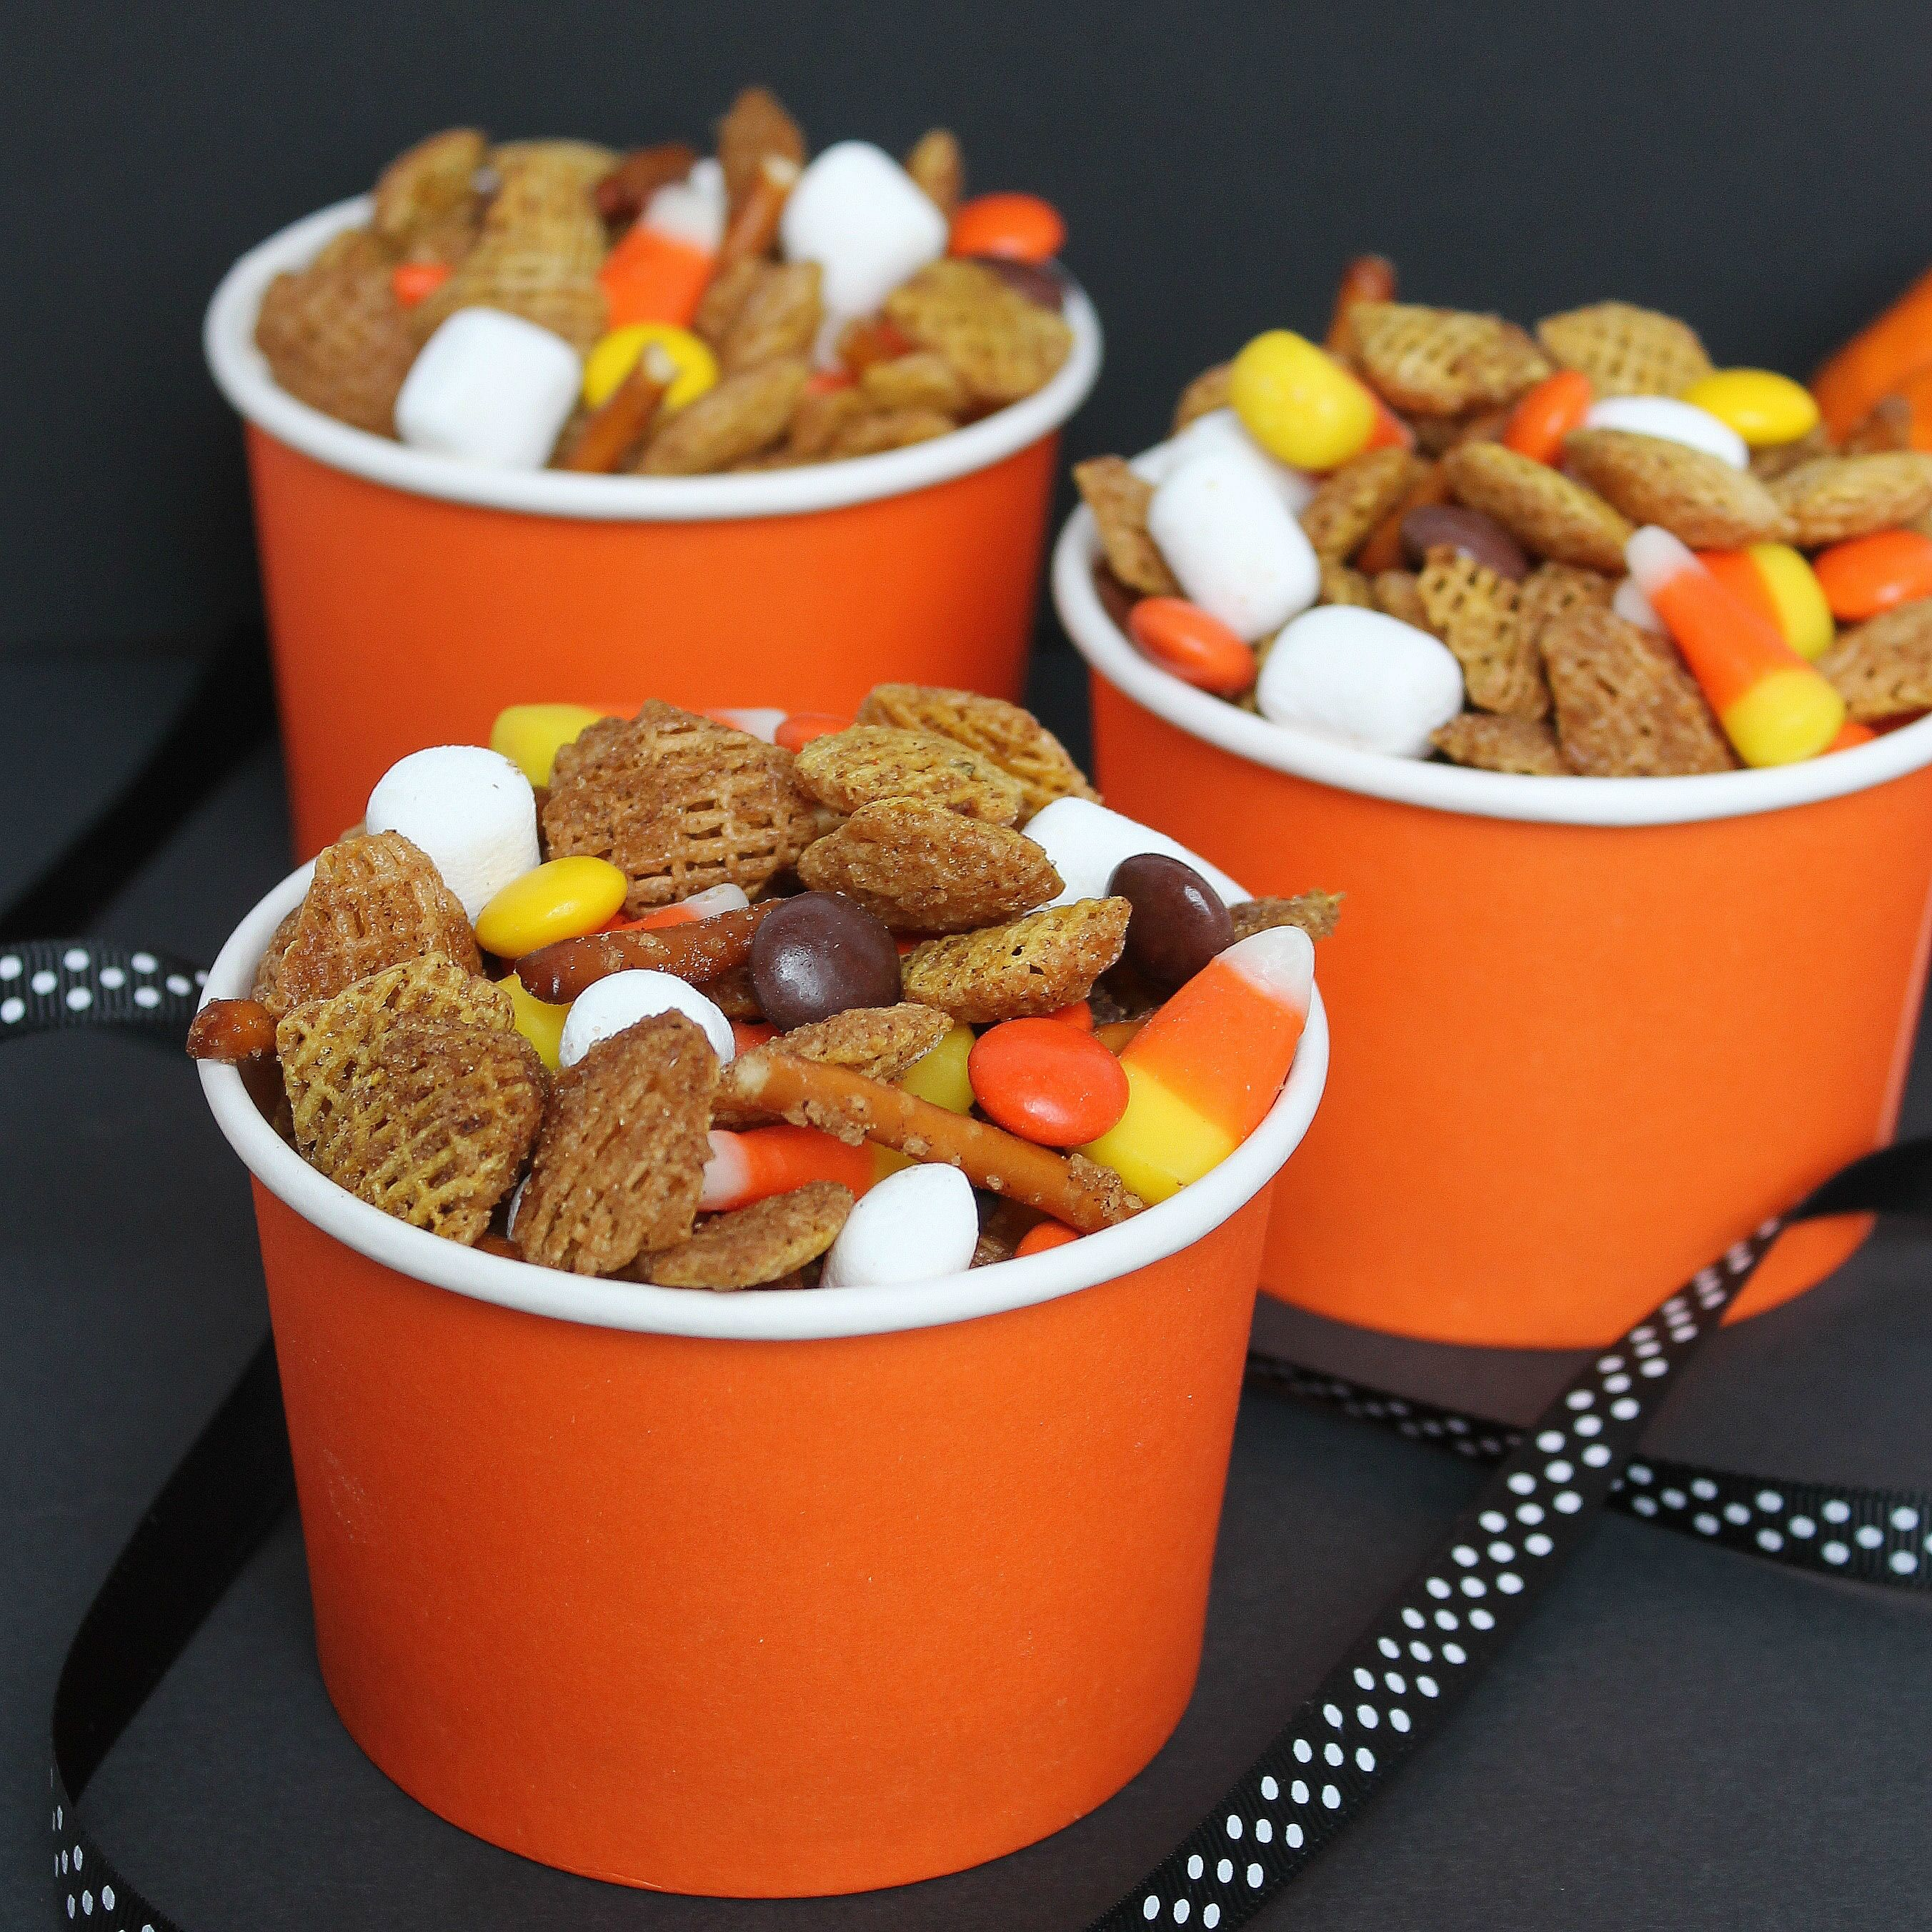 Fall snack mix 6 cups chex or crispix cereal 1 cup for 6 tablespoons butter